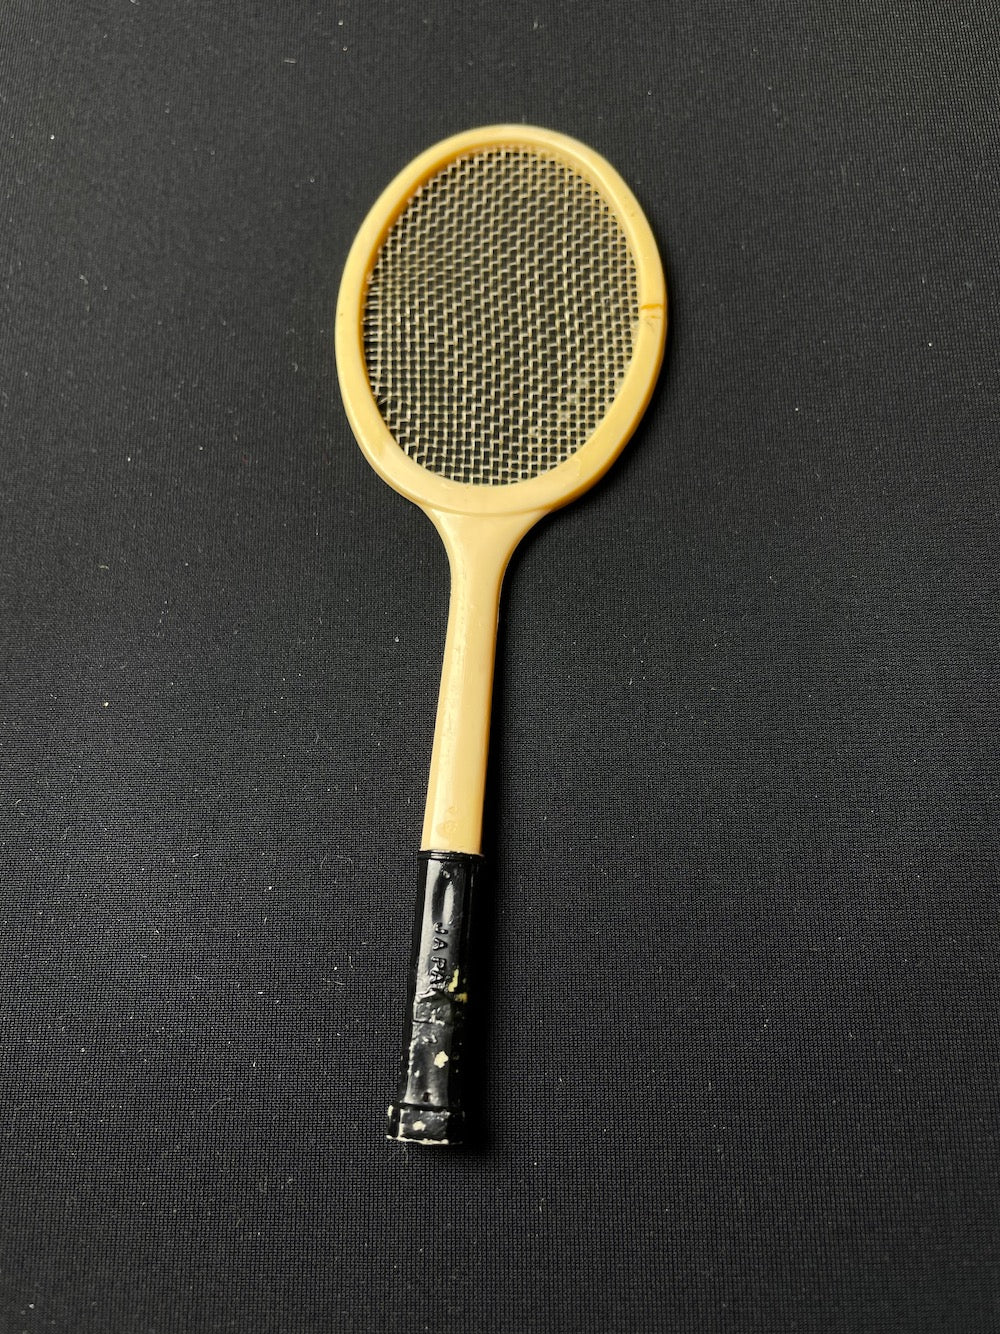 Barbie Tennis Anyone racket 1962 with real strings Mattel 941 fits 12